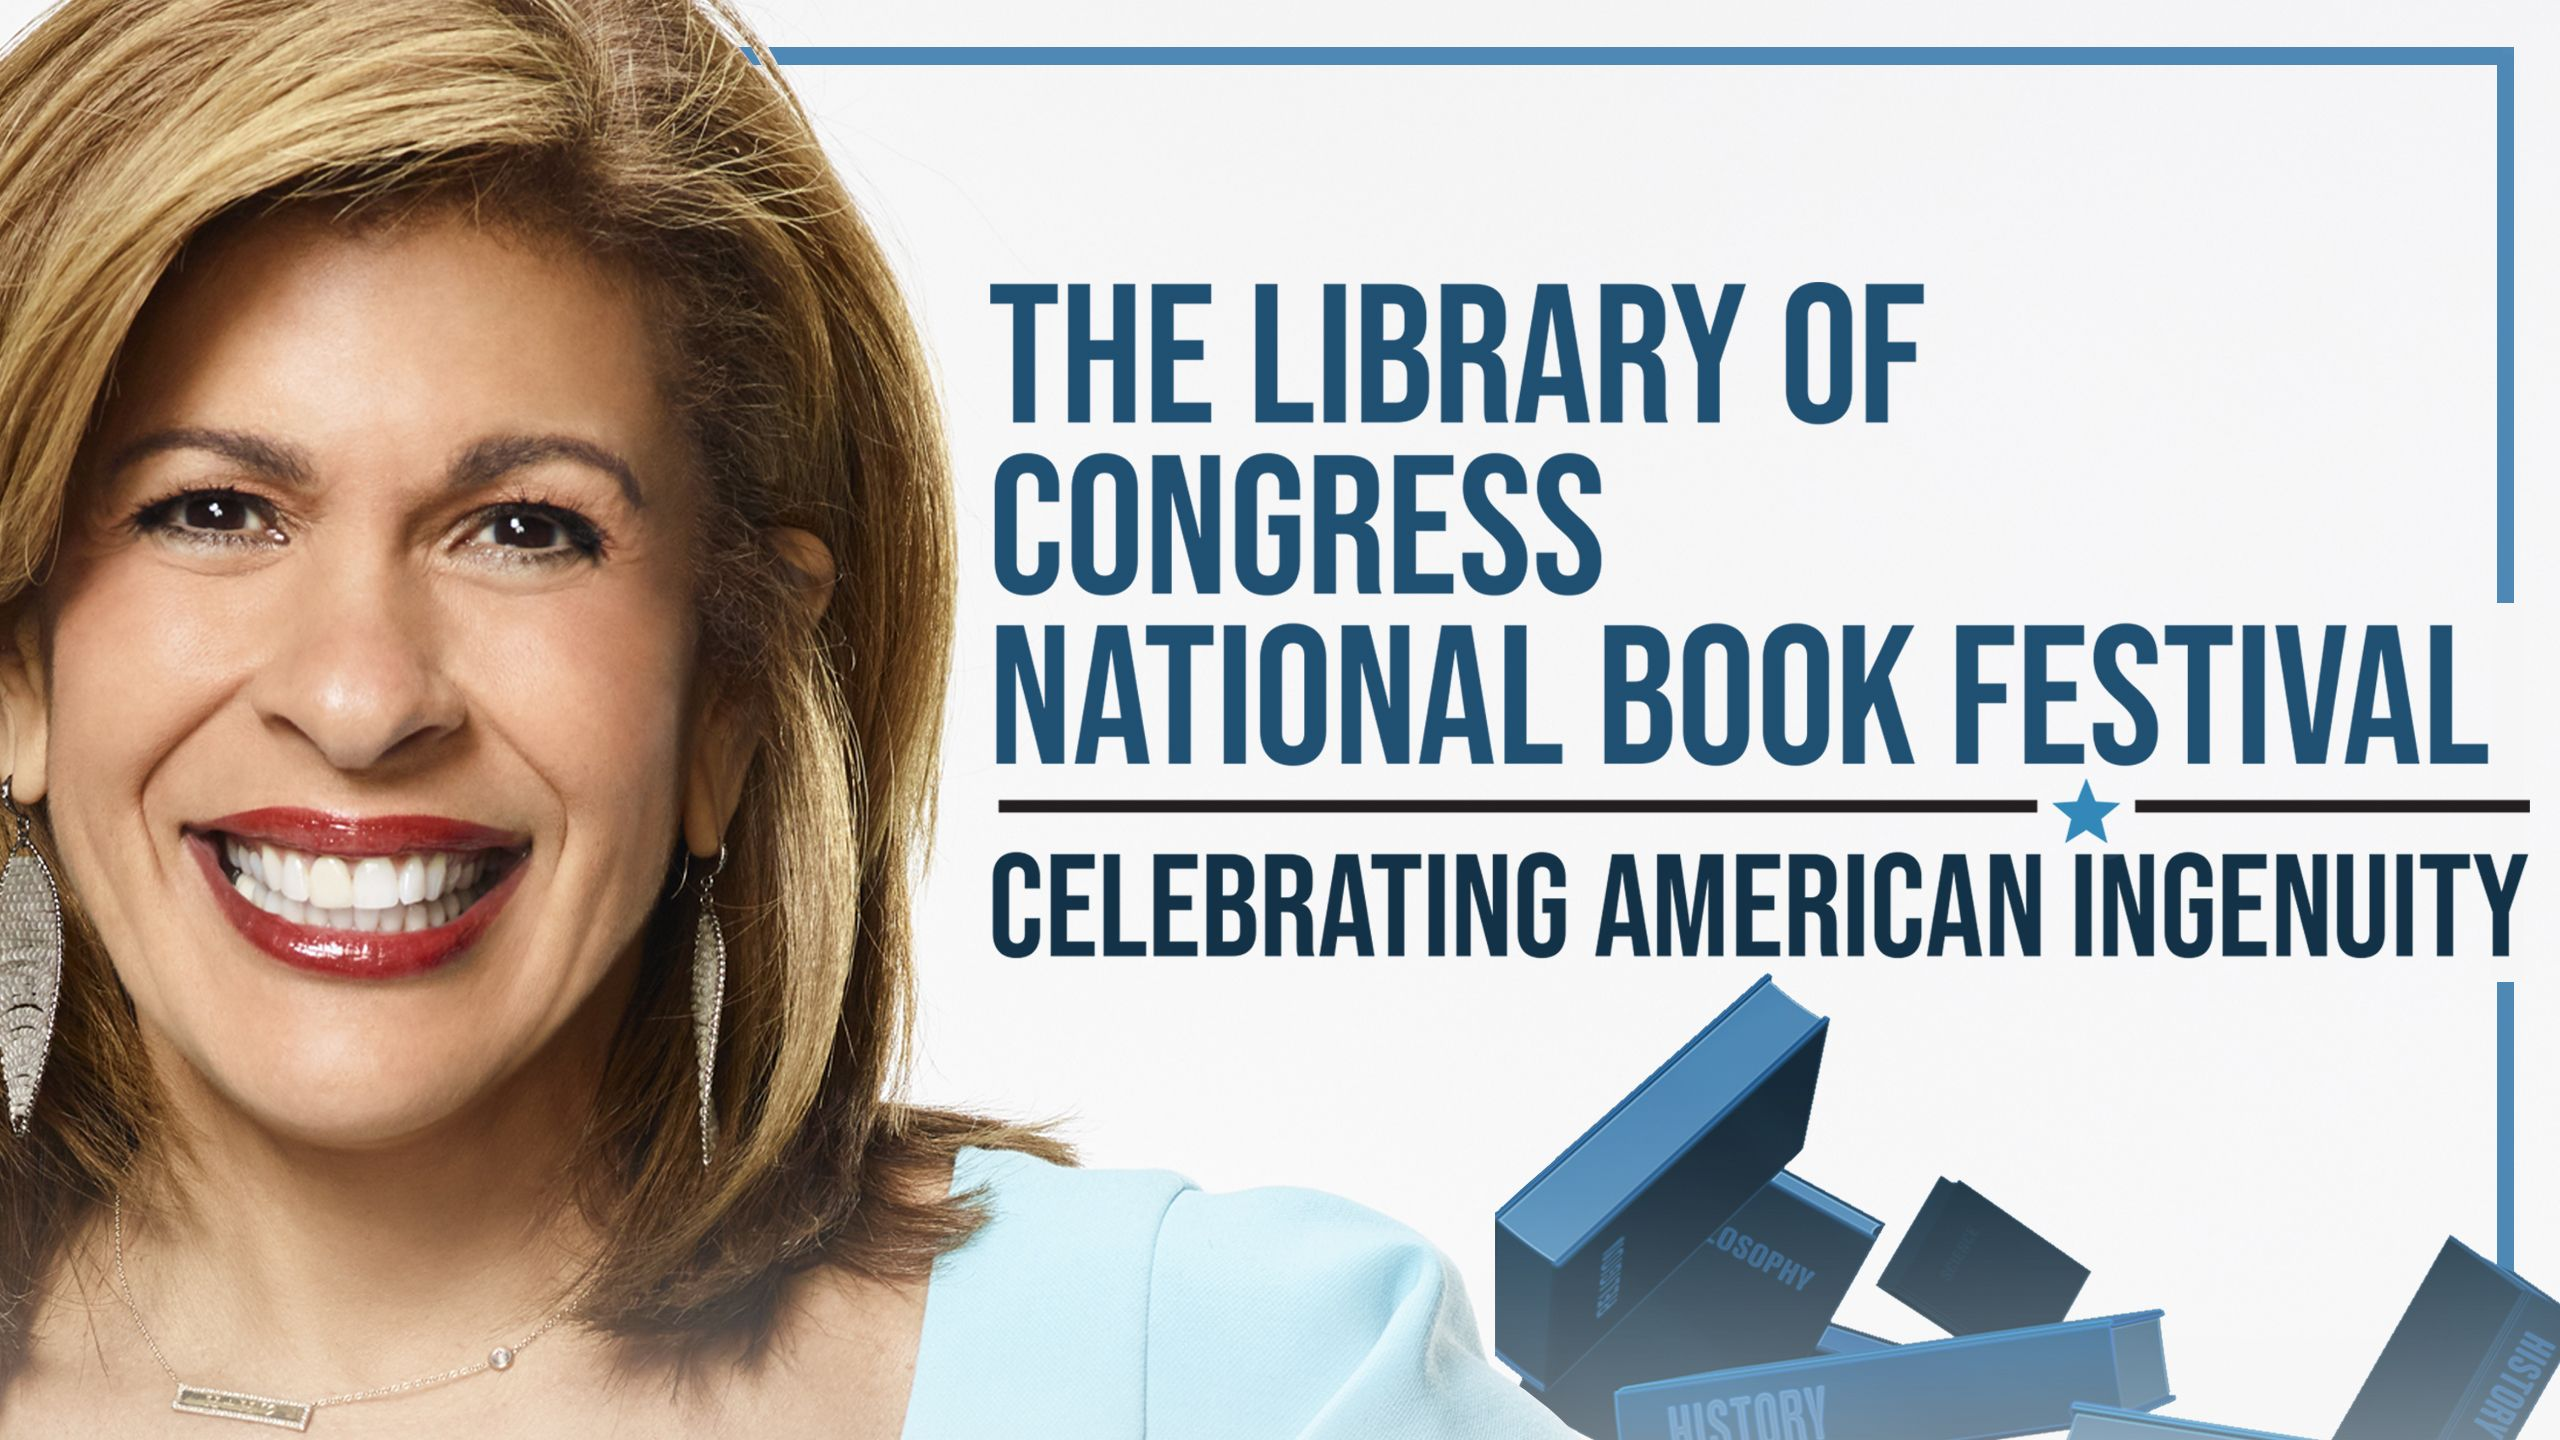 The Library of Congress National Book Festival: Celebrating American Ingenuity